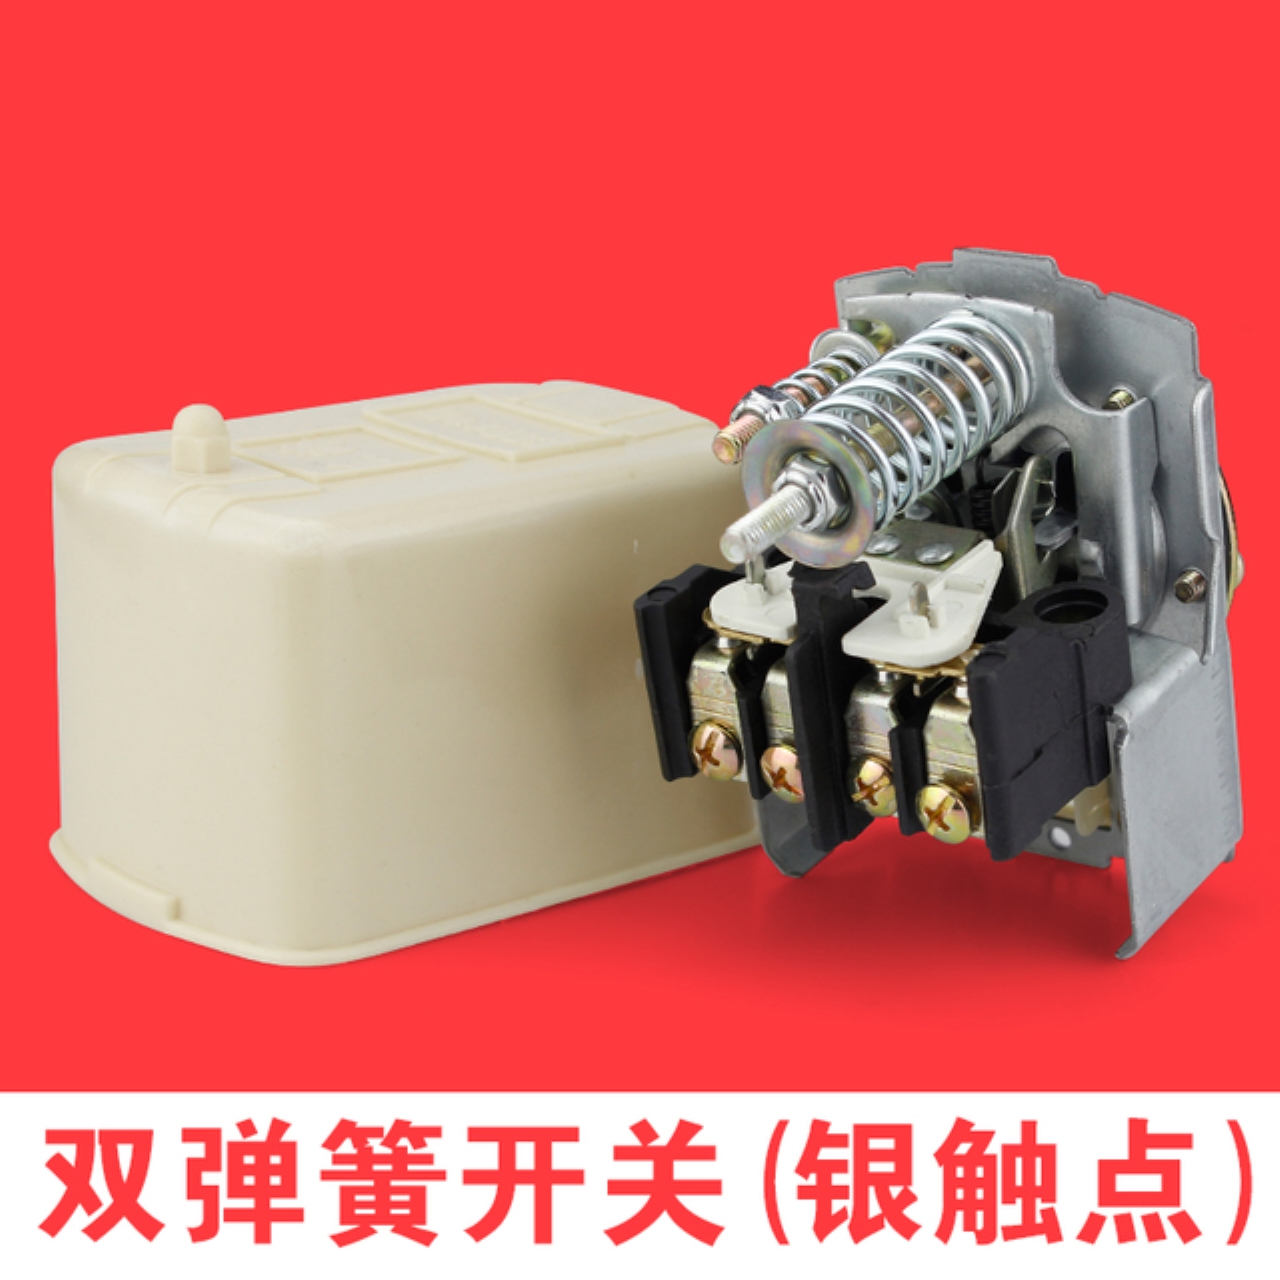 Non tower water supply pressure tank controller, single phase 220V pressure switch, household water pump mechanical adjustable pressure automatic